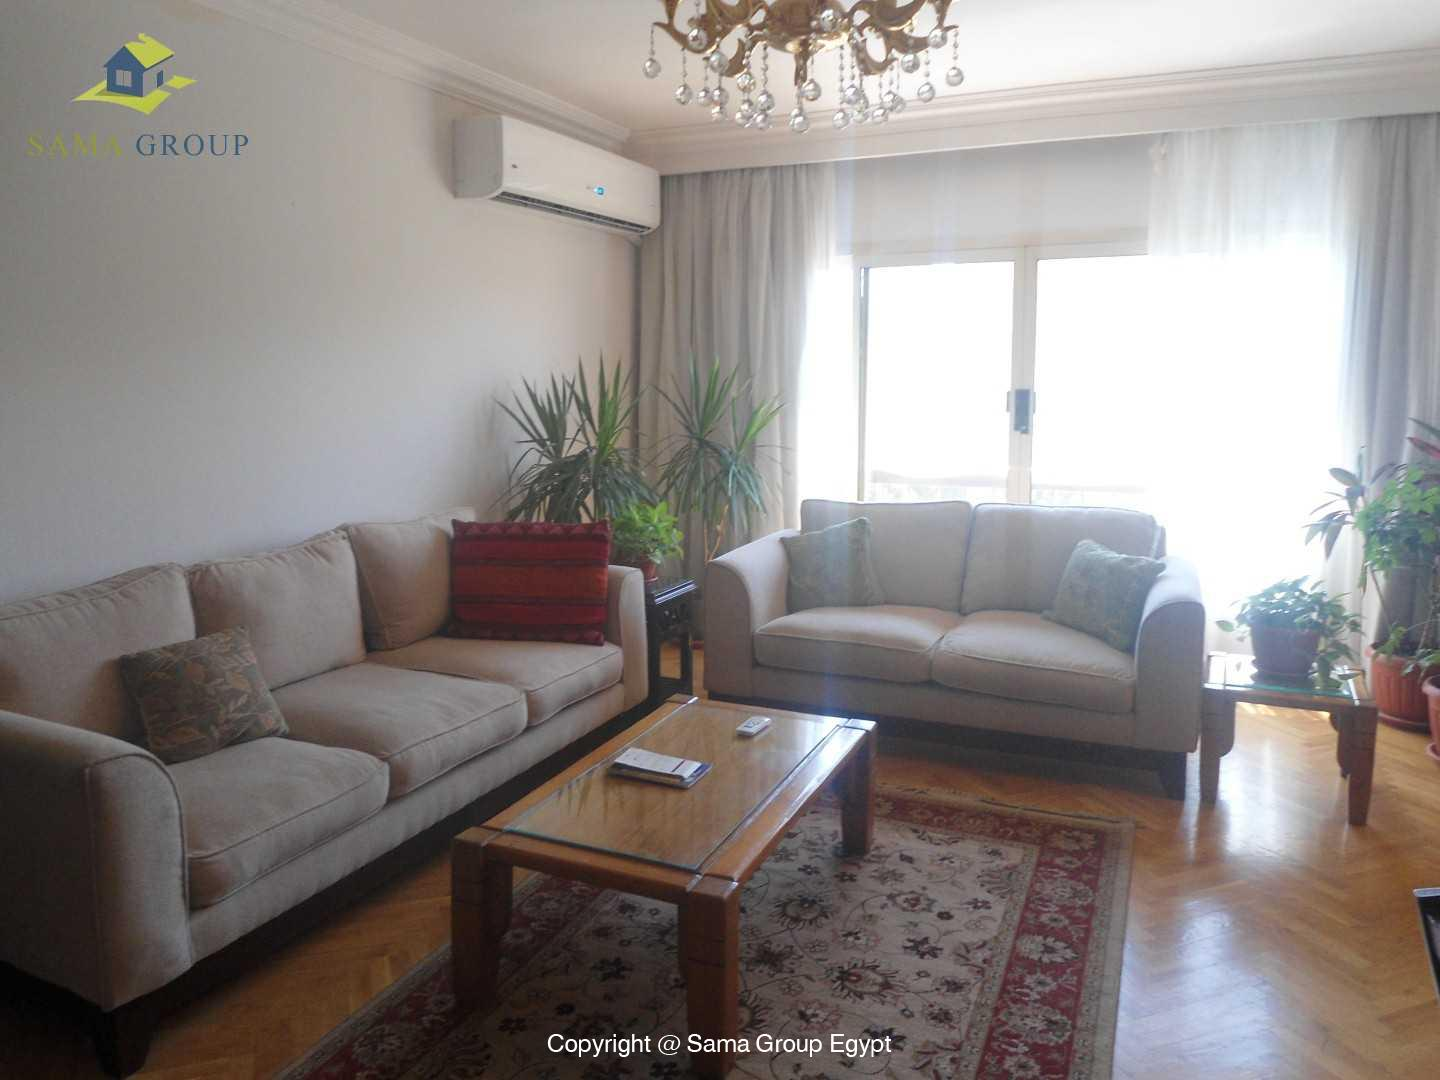 Modern Furnished Apartment For Rent In Maadi Degla,Modern Furnished,Apartment NO #11